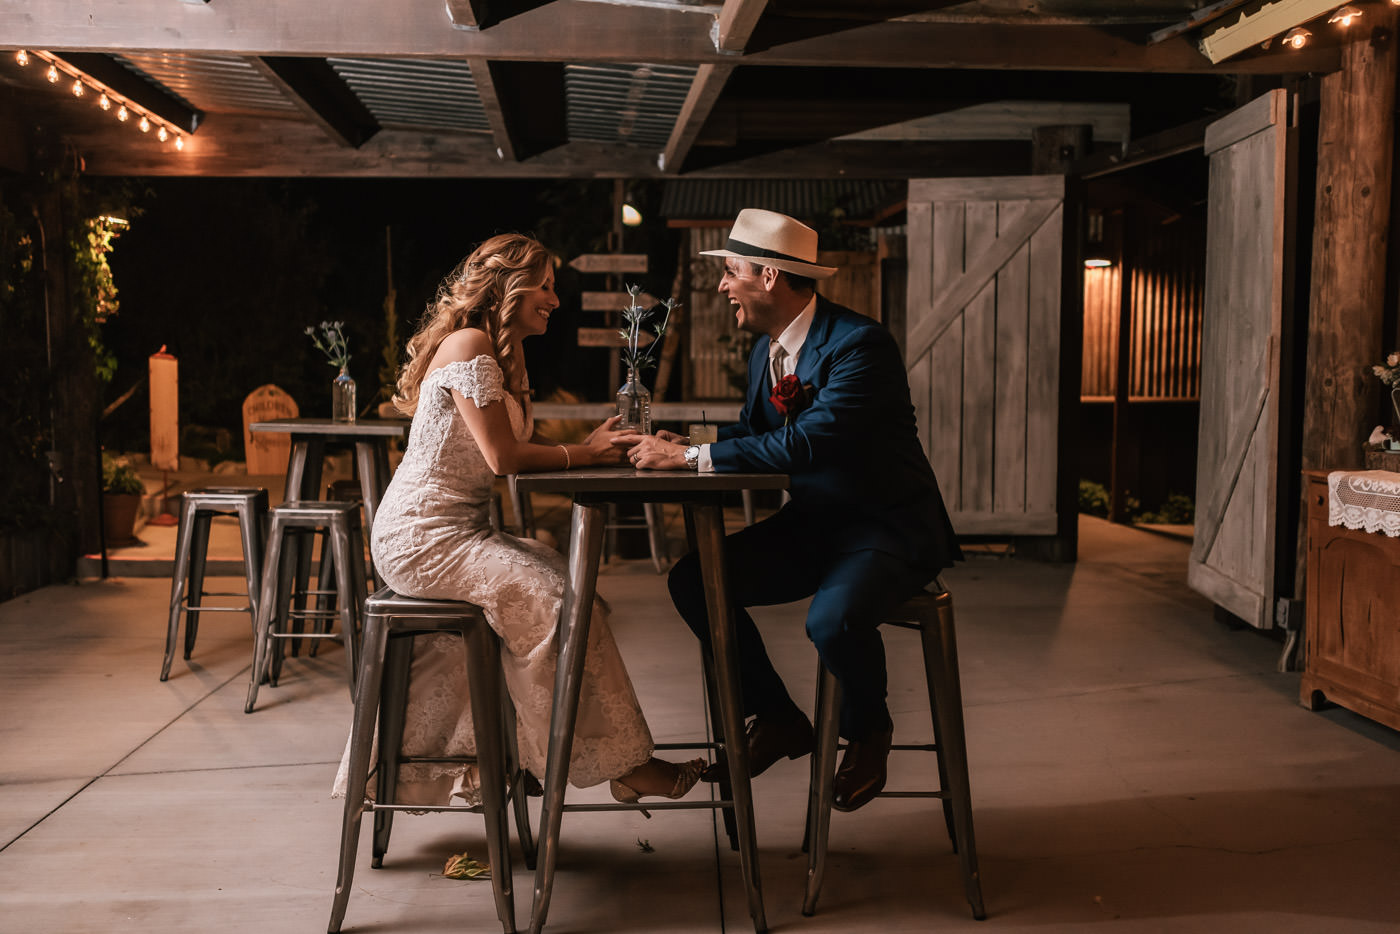 Classy bride and groom take a seat at the rustic bar area of The Homestead at Wilshire Ranch.